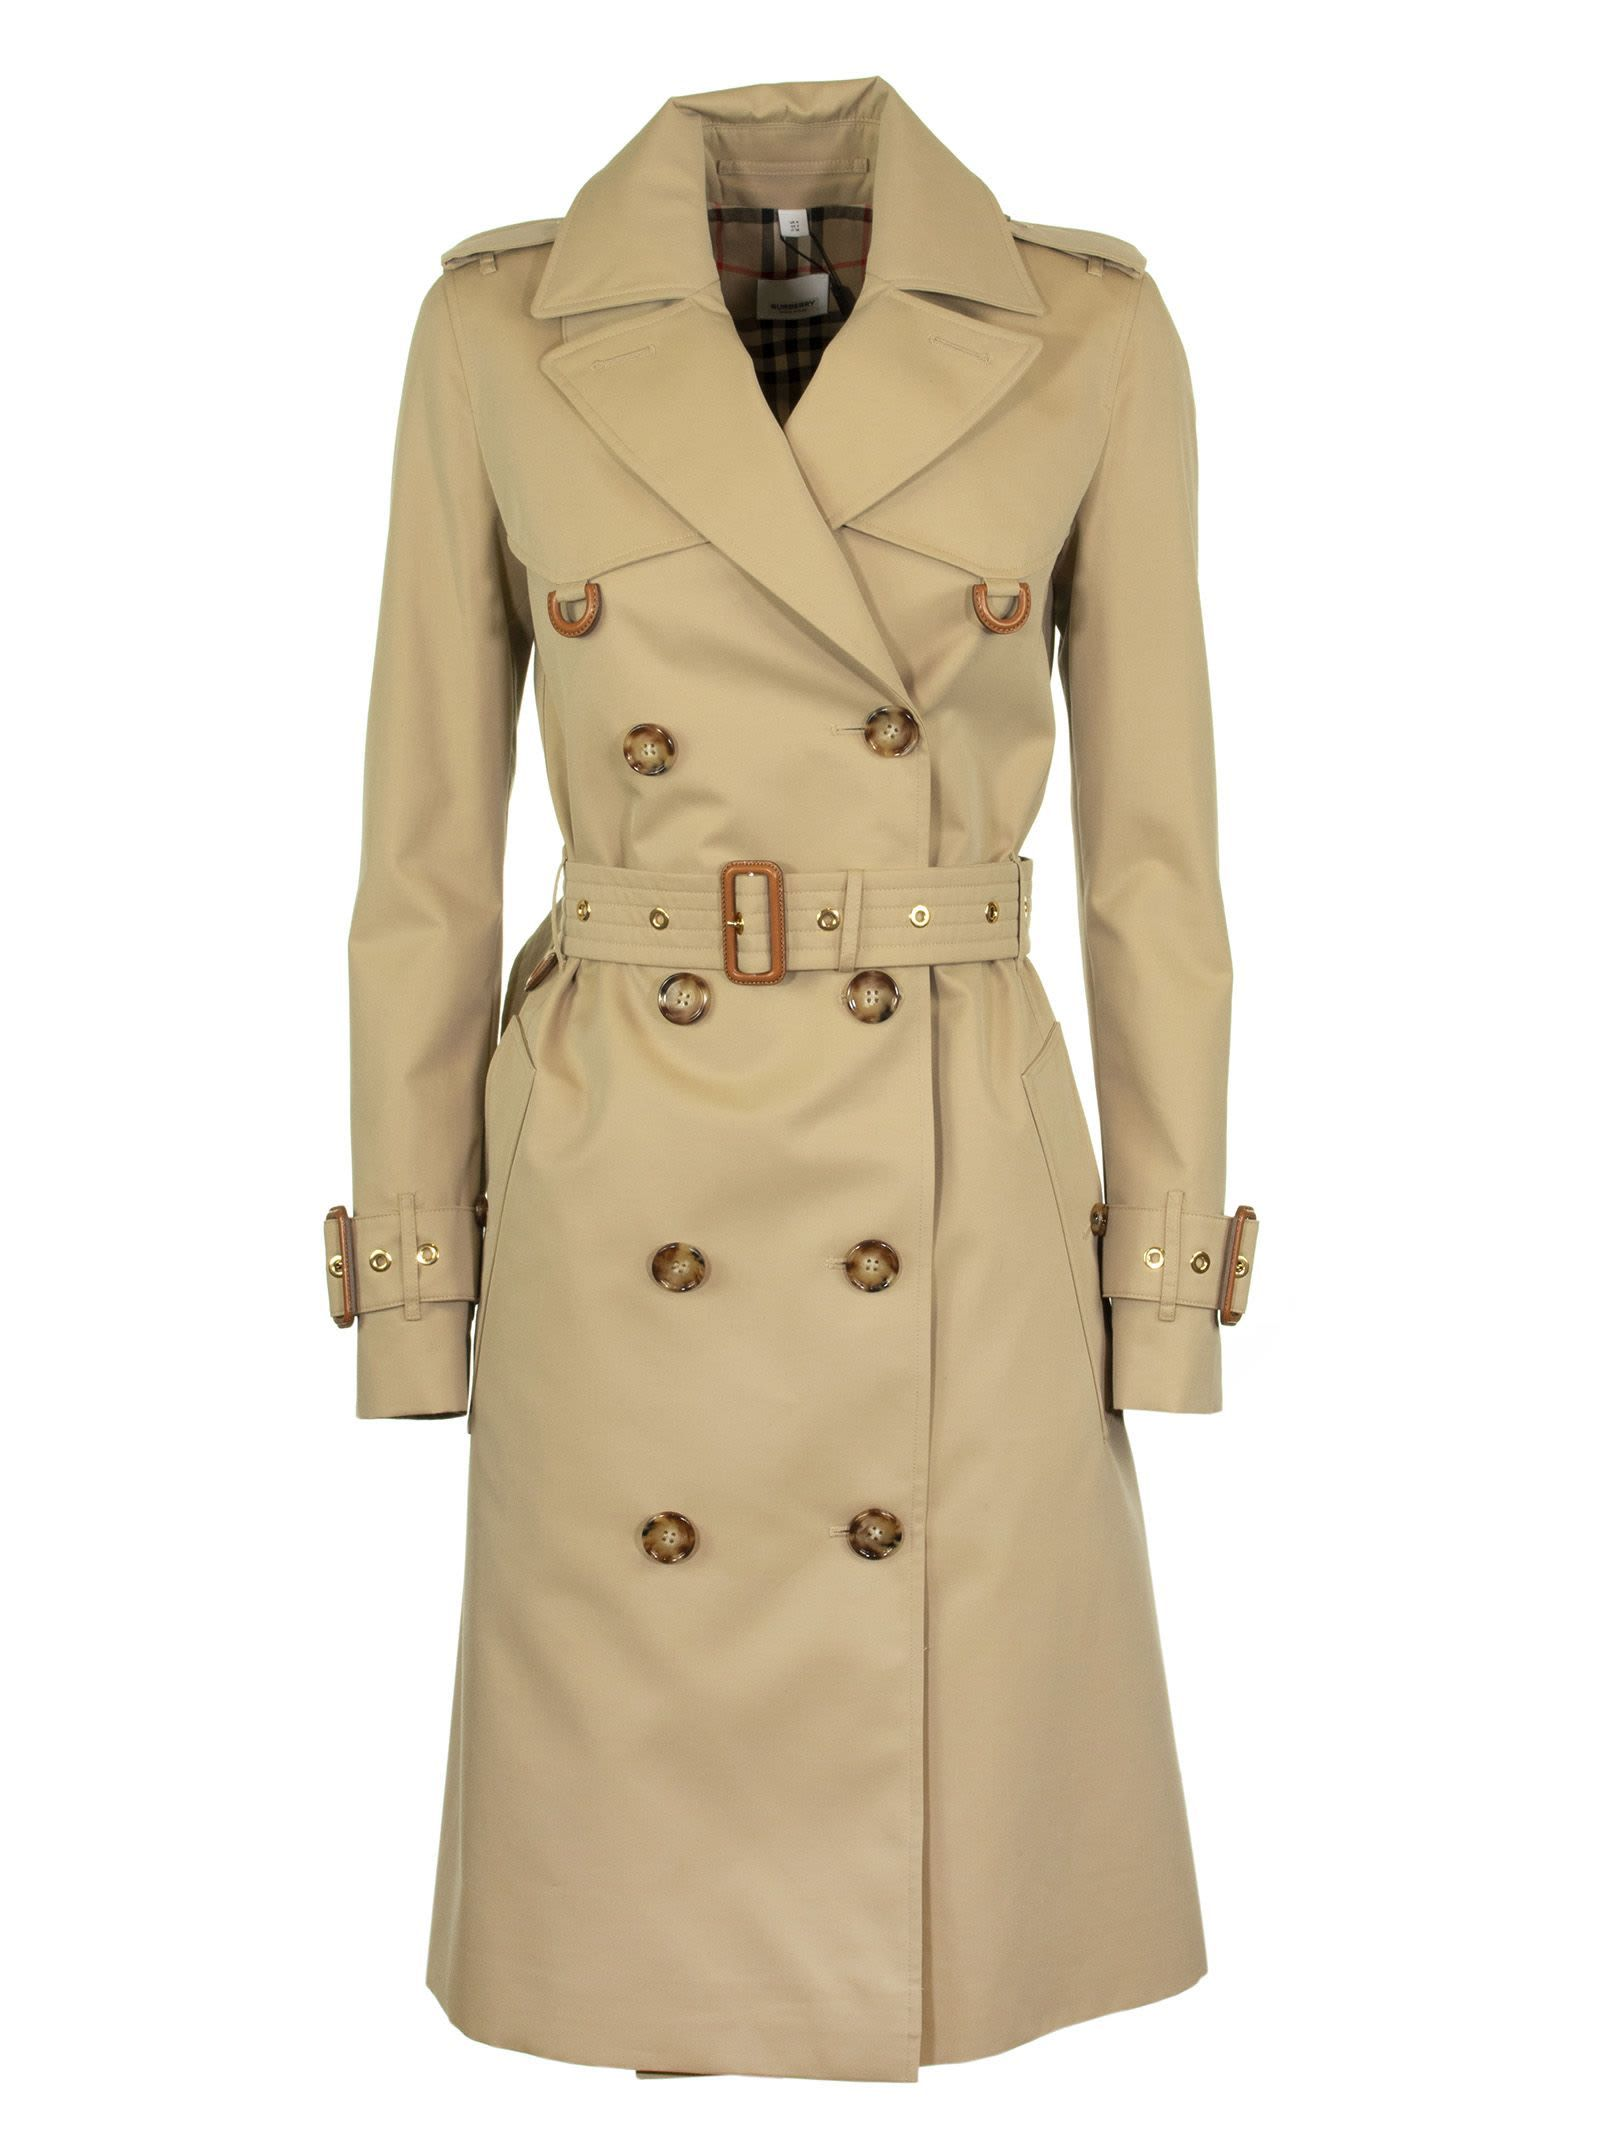 Best Price On The Market At Italist Burberry Burberry Coat In 2021 Burberry Coat Coat Trench Coats Women [ 2136 x 1600 Pixel ]